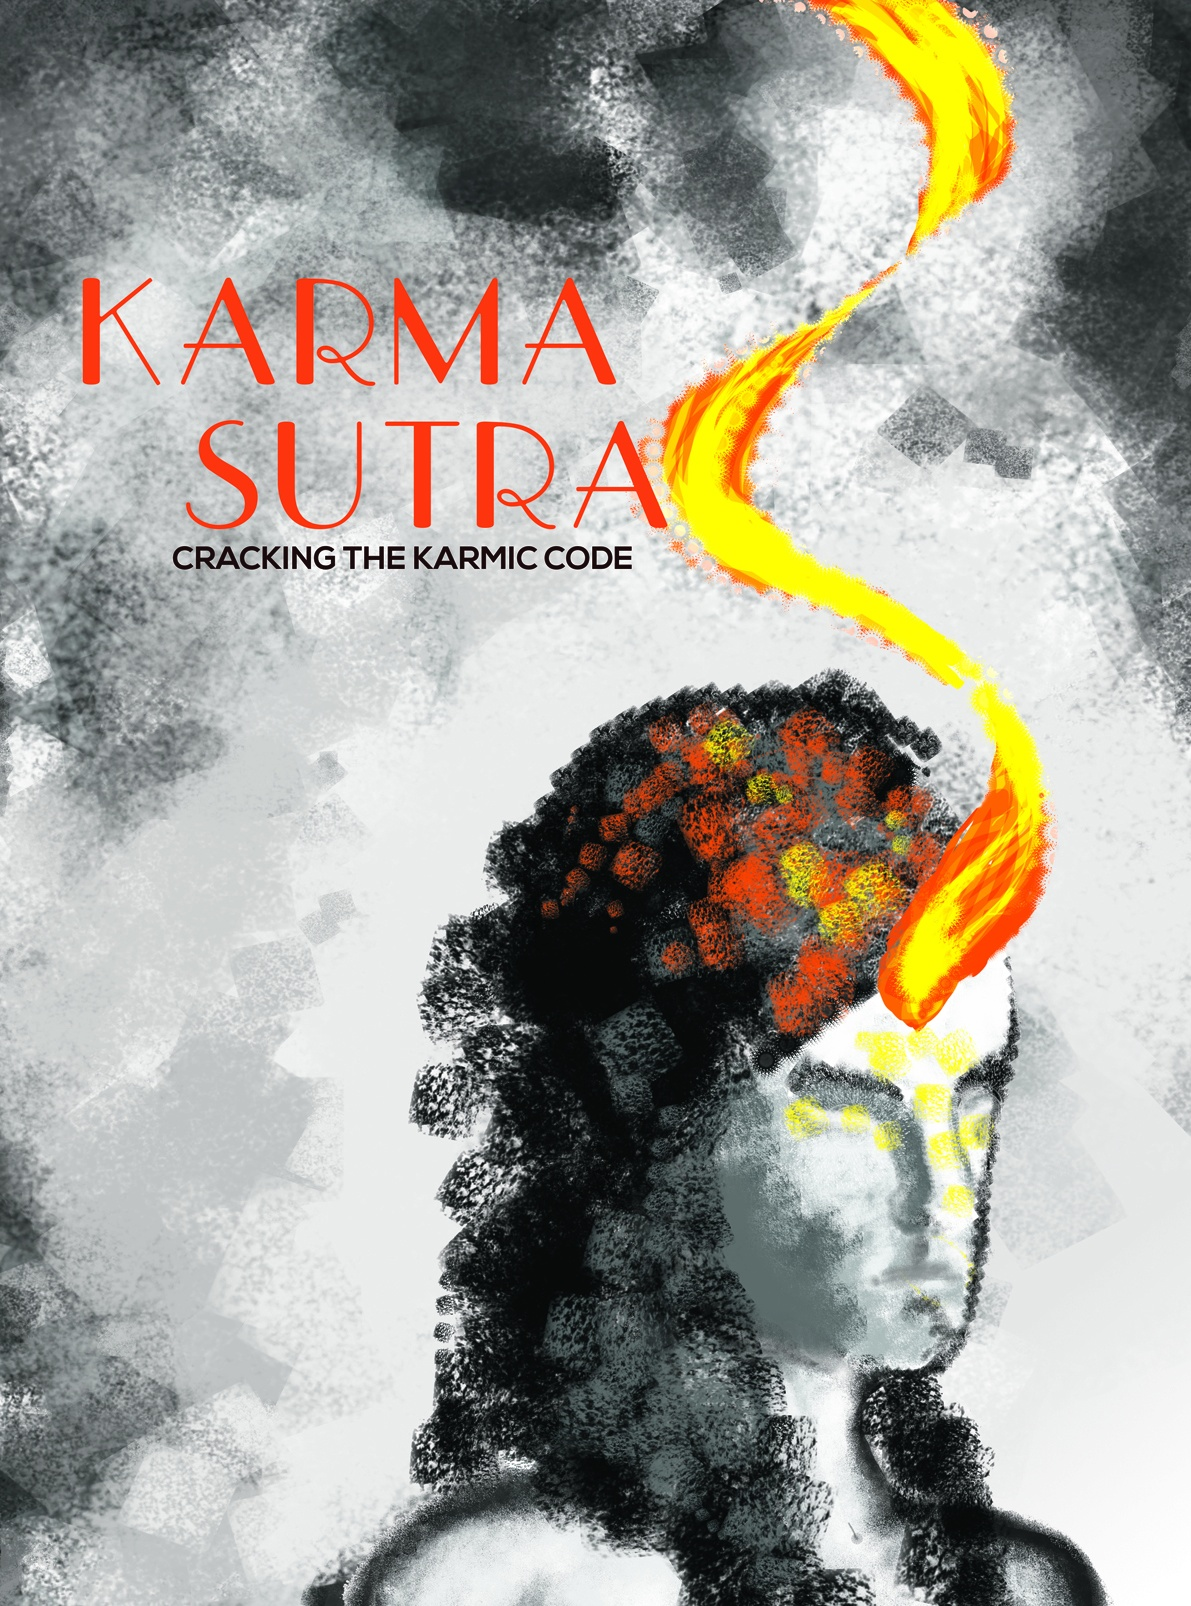 Smashwords karma sutra cracking the karmic code a book by hingori karma sutra cracking the karmic code fandeluxe Image collections